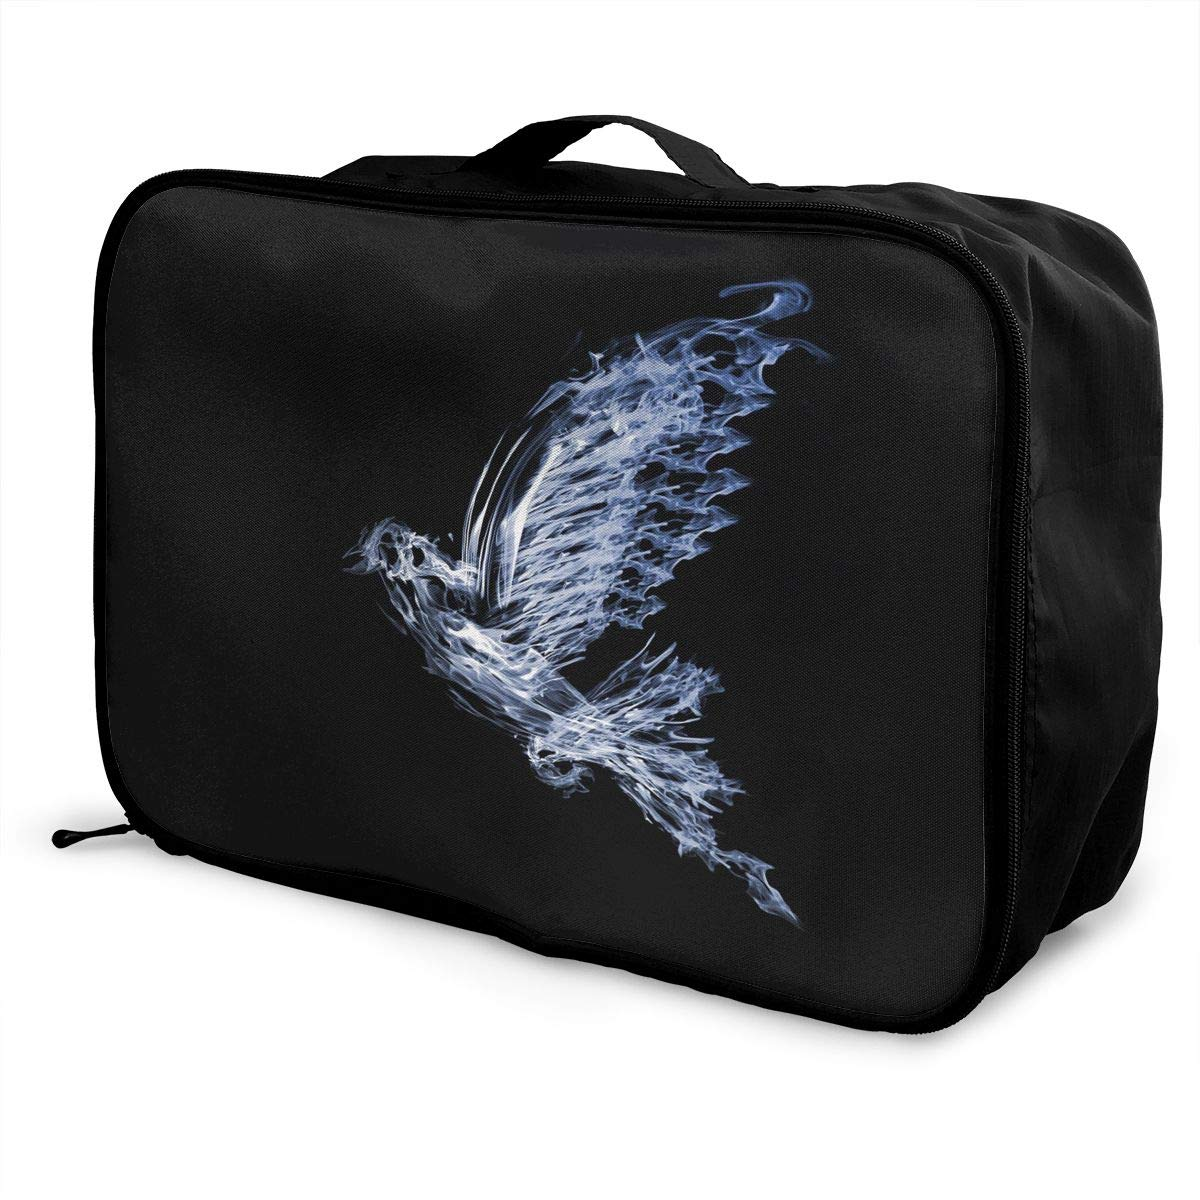 Travel Luggage Duffle Bag Lightweight Portable Handbag Blue Smoke Dove Painting Large Capacity Waterproof Foldable Storage Tote